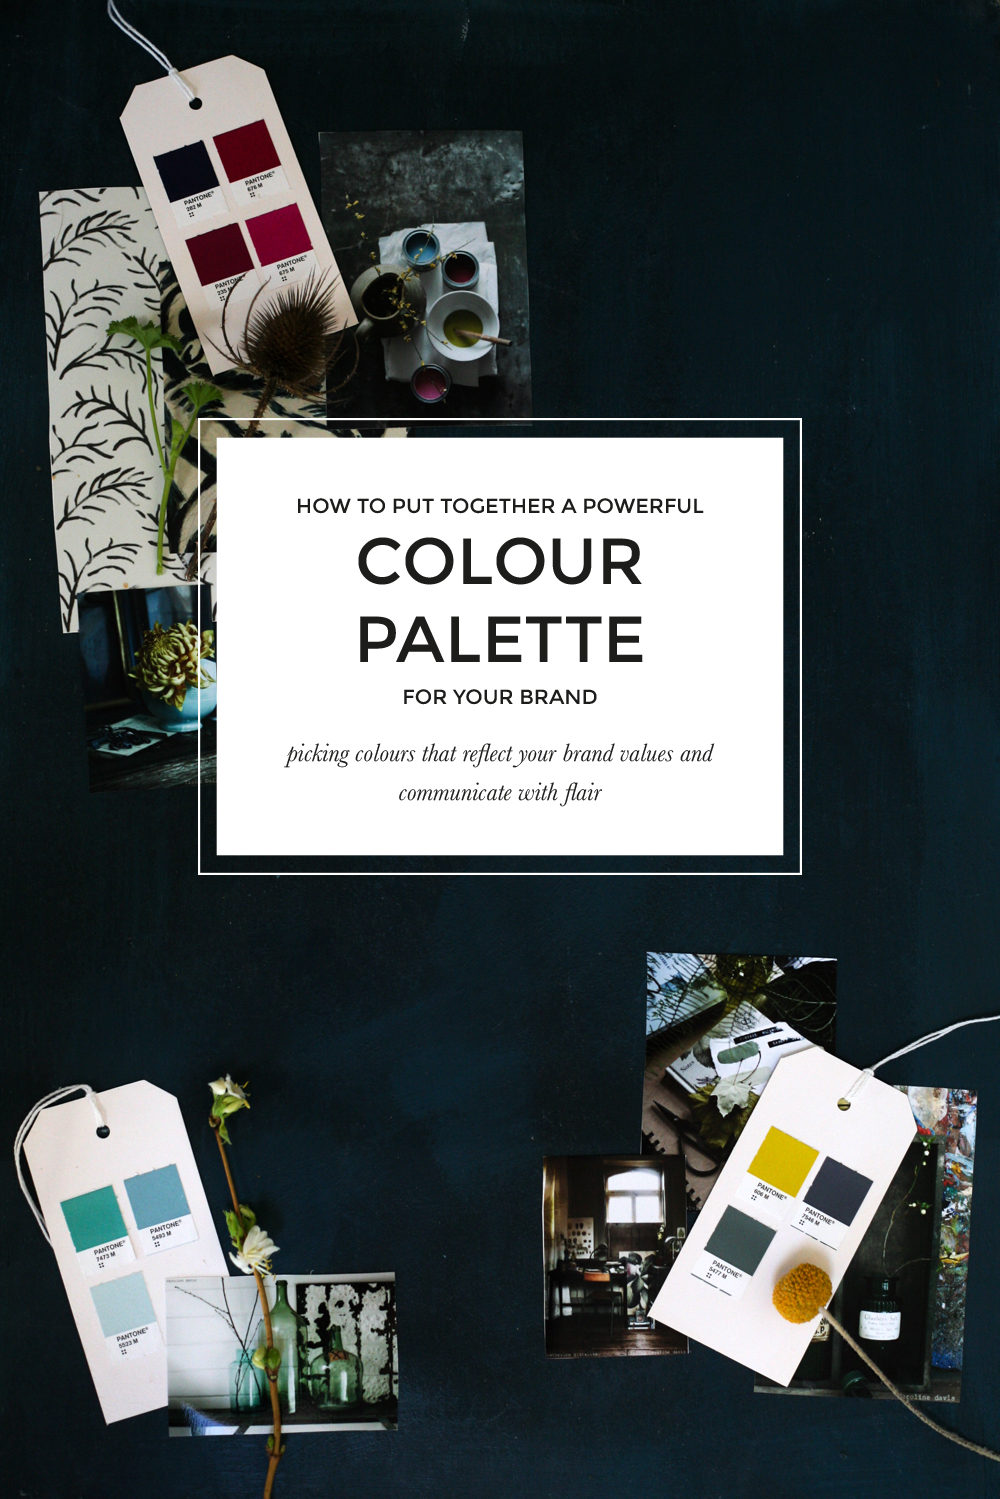 how-to-put-together-a-powerful-colour-palette-for-your-brand-8